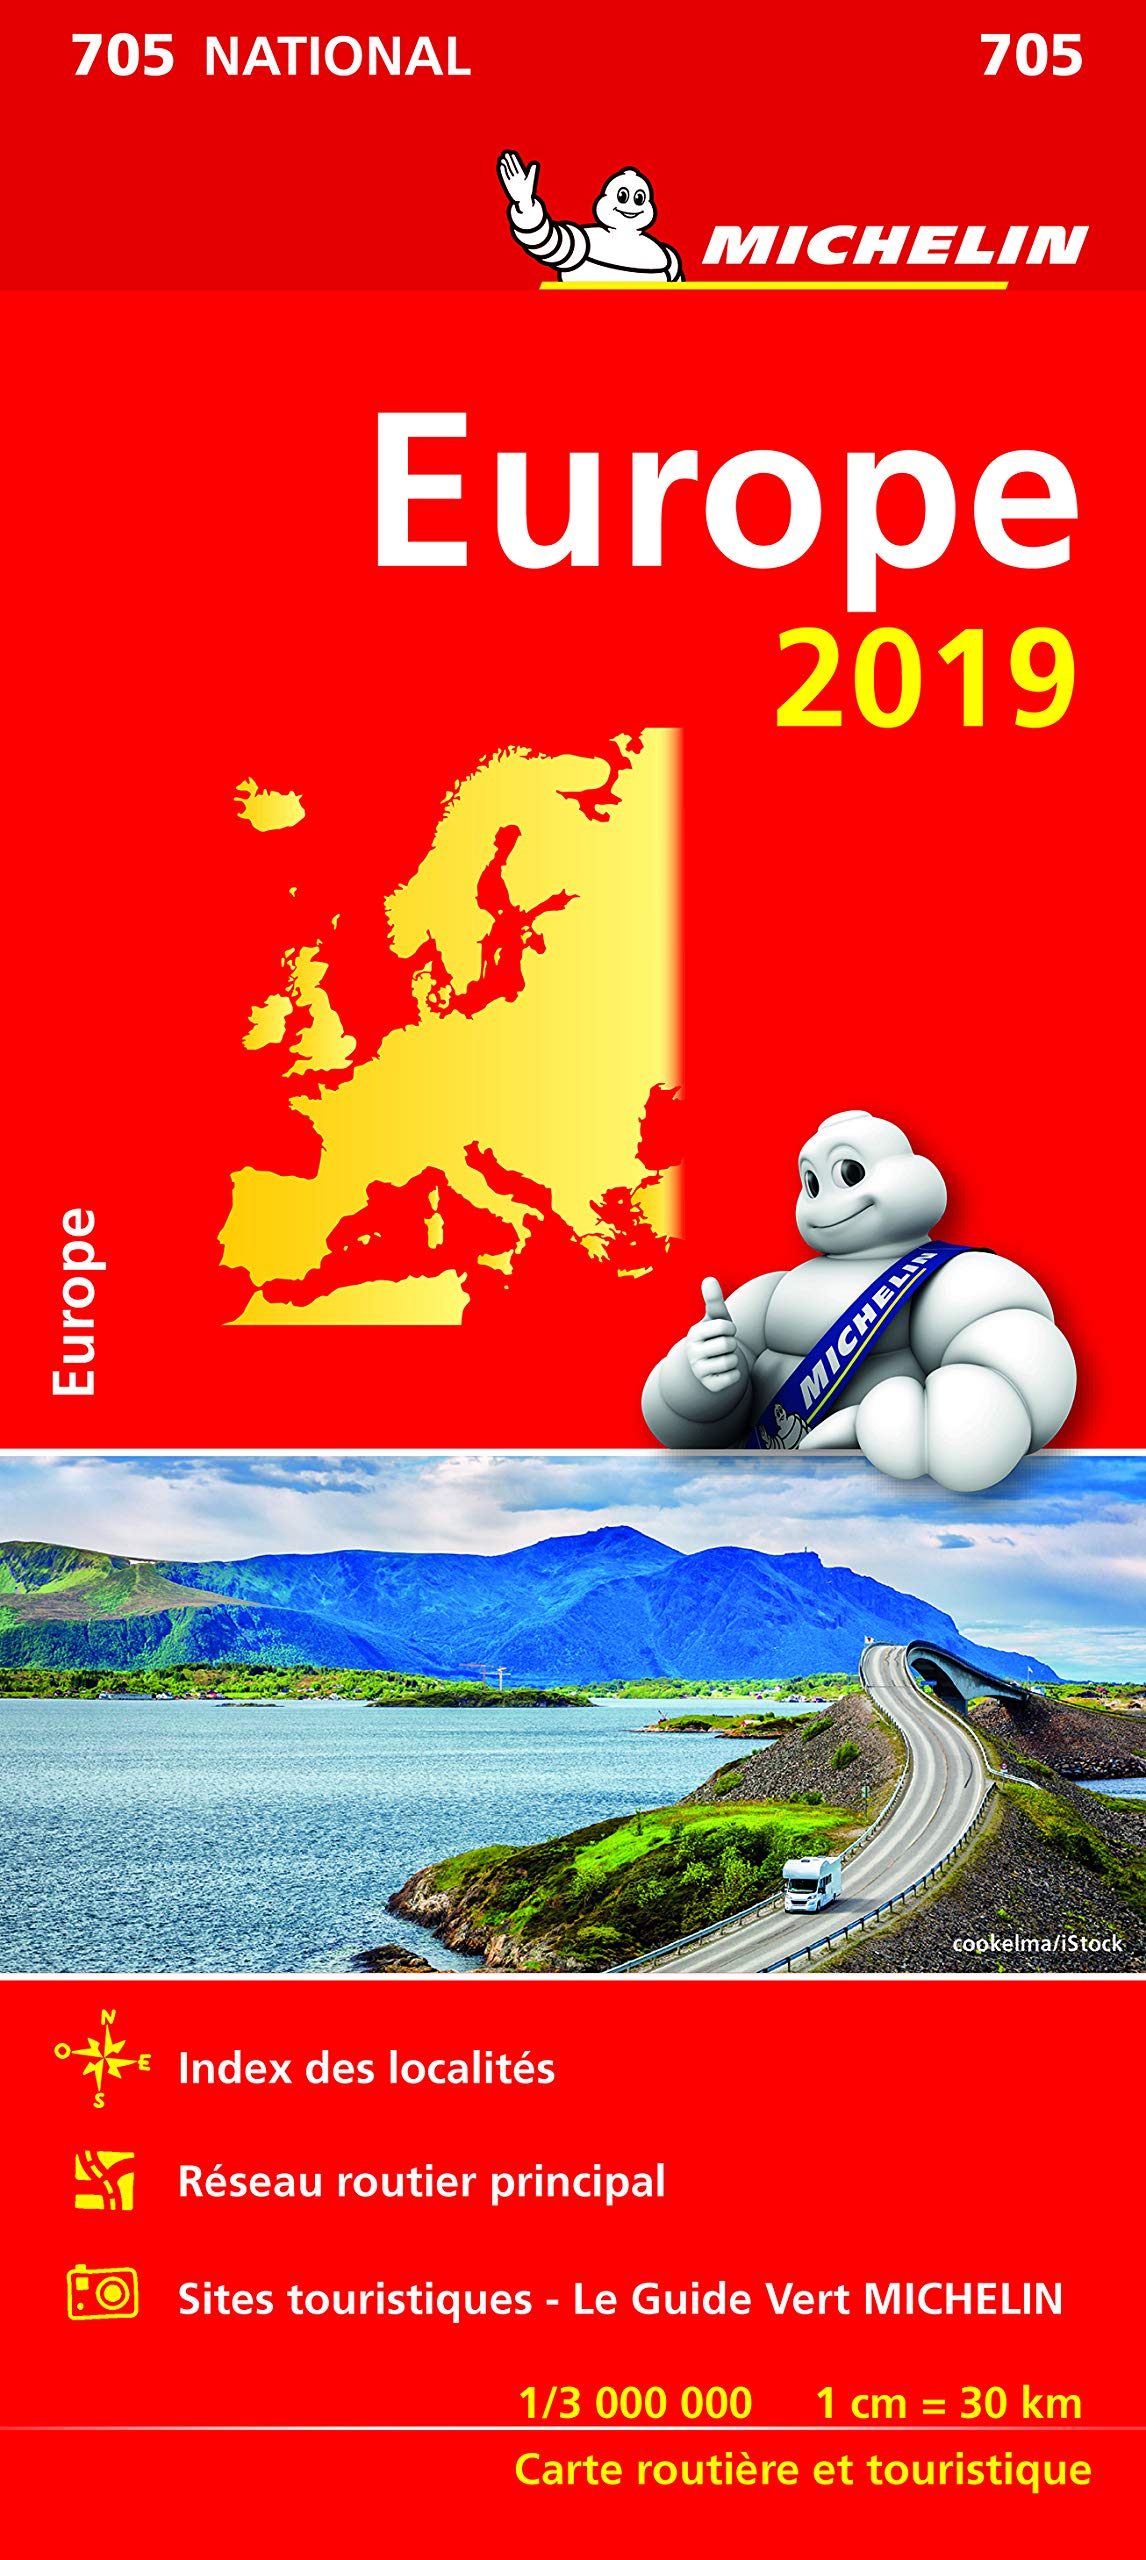 Carte Routiere Europe 2019.Amazon Fr Carte Europe Michelin 2019 Michelin Livres